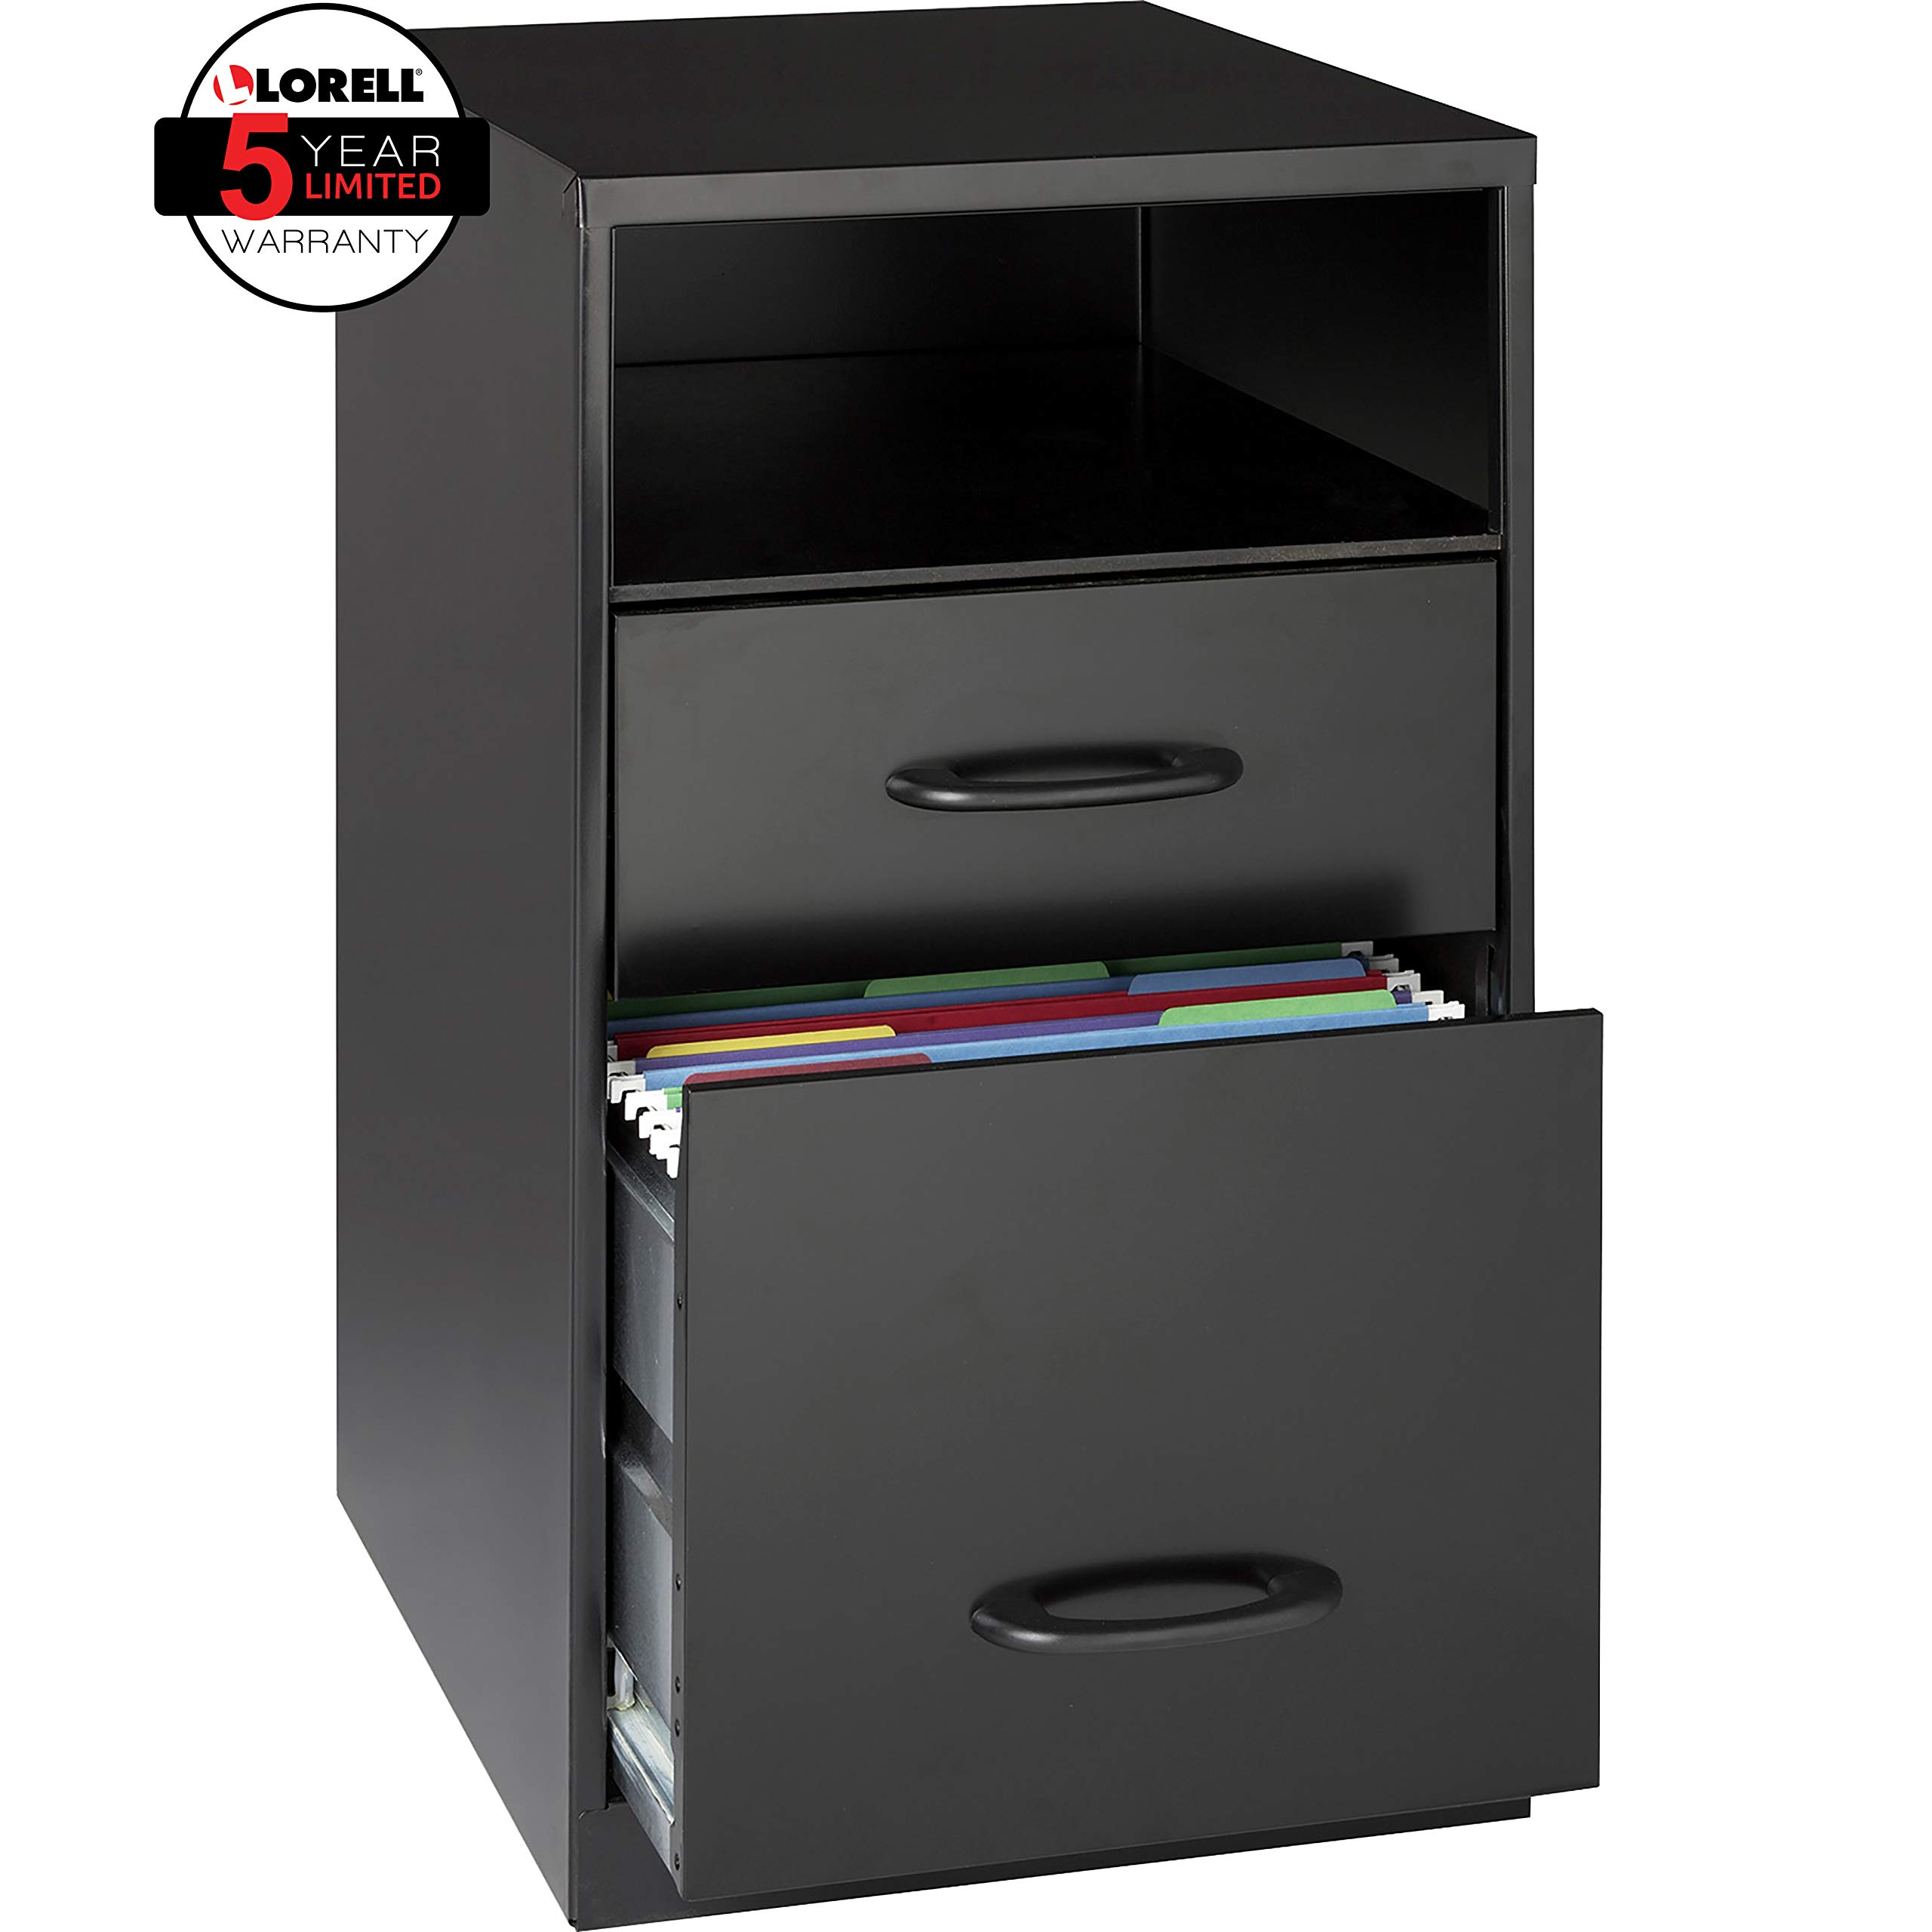 Lorell 18505 2-Drawer Mobile File Cabinet with Shelf, 18-Inch by Lorell